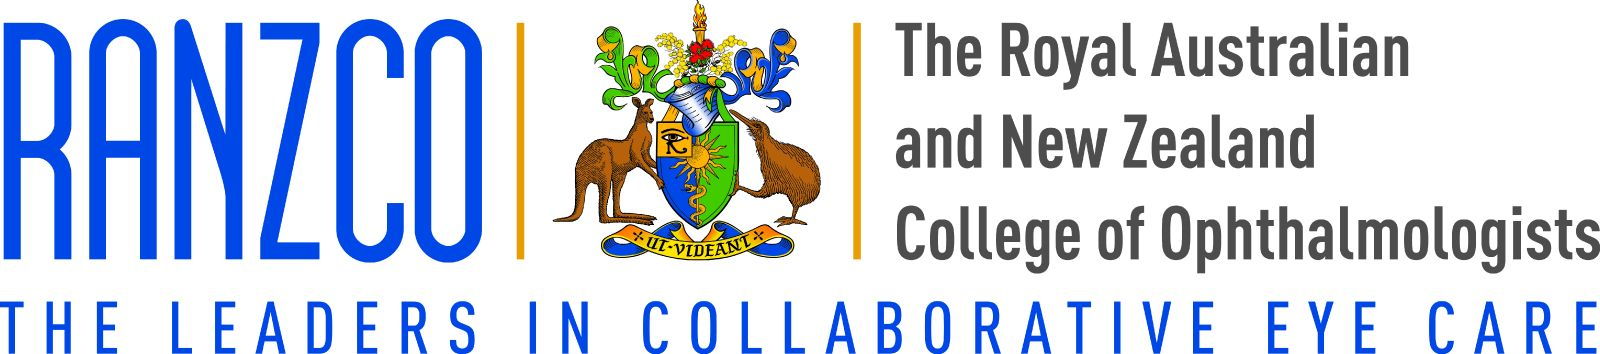 The Royal Australian and New Zealand College of Ophthalmologists logo